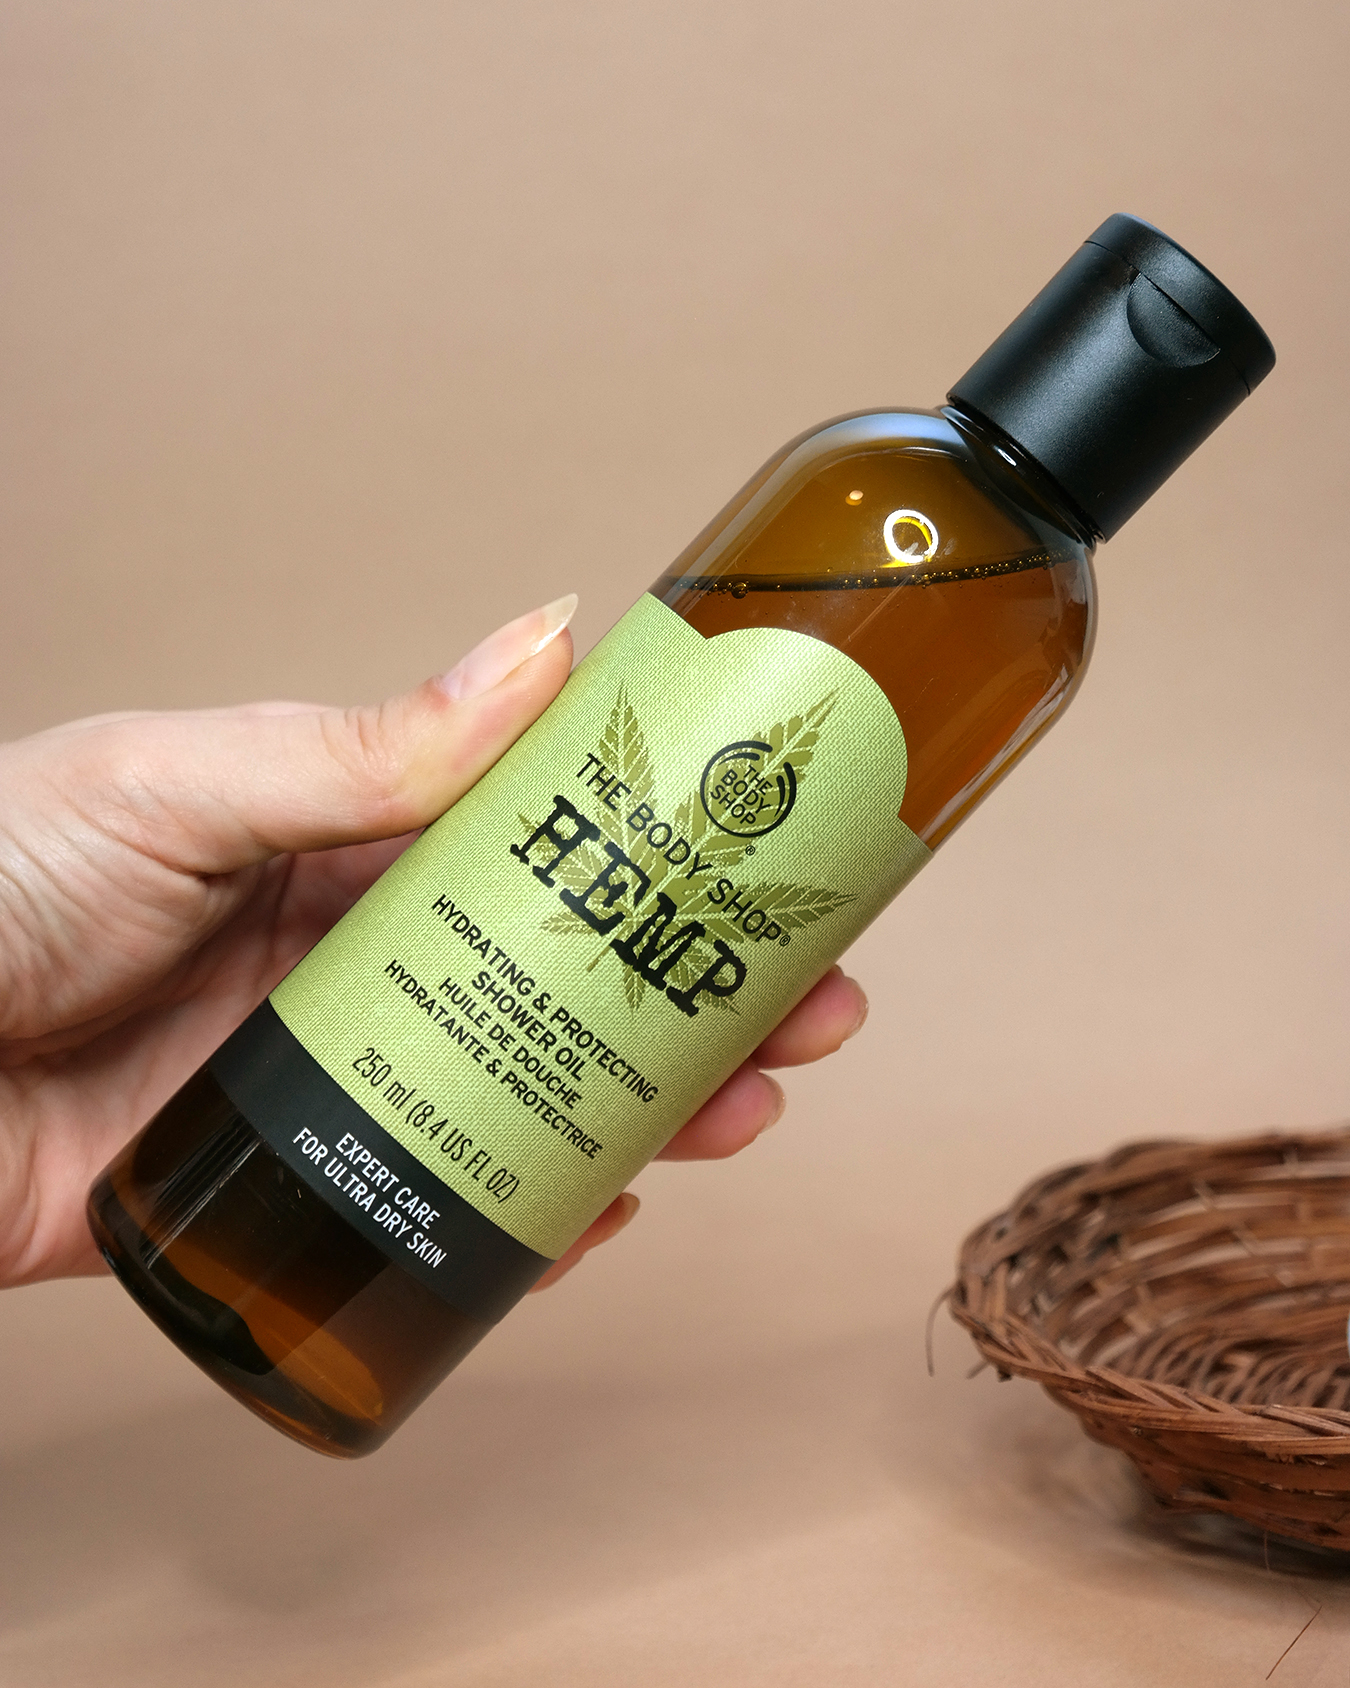 The Body Shop Hemp Hydrating & Protecting Shower Oil